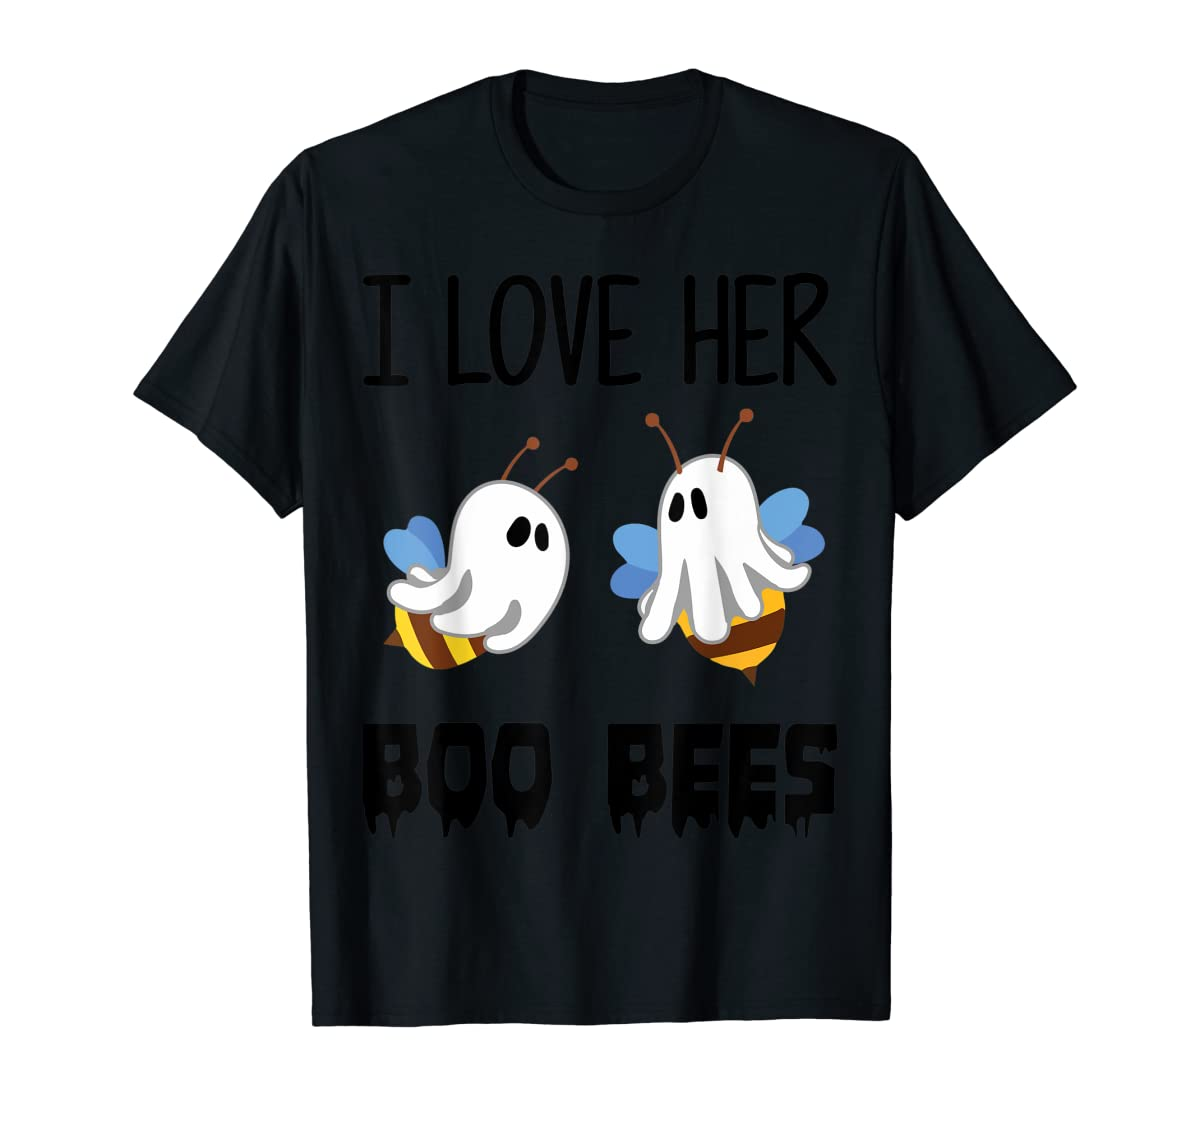 I Love Her Boo Bees Couples Funny Halloween Costume Gift T-Shirt-Men's T-Shirt-Black